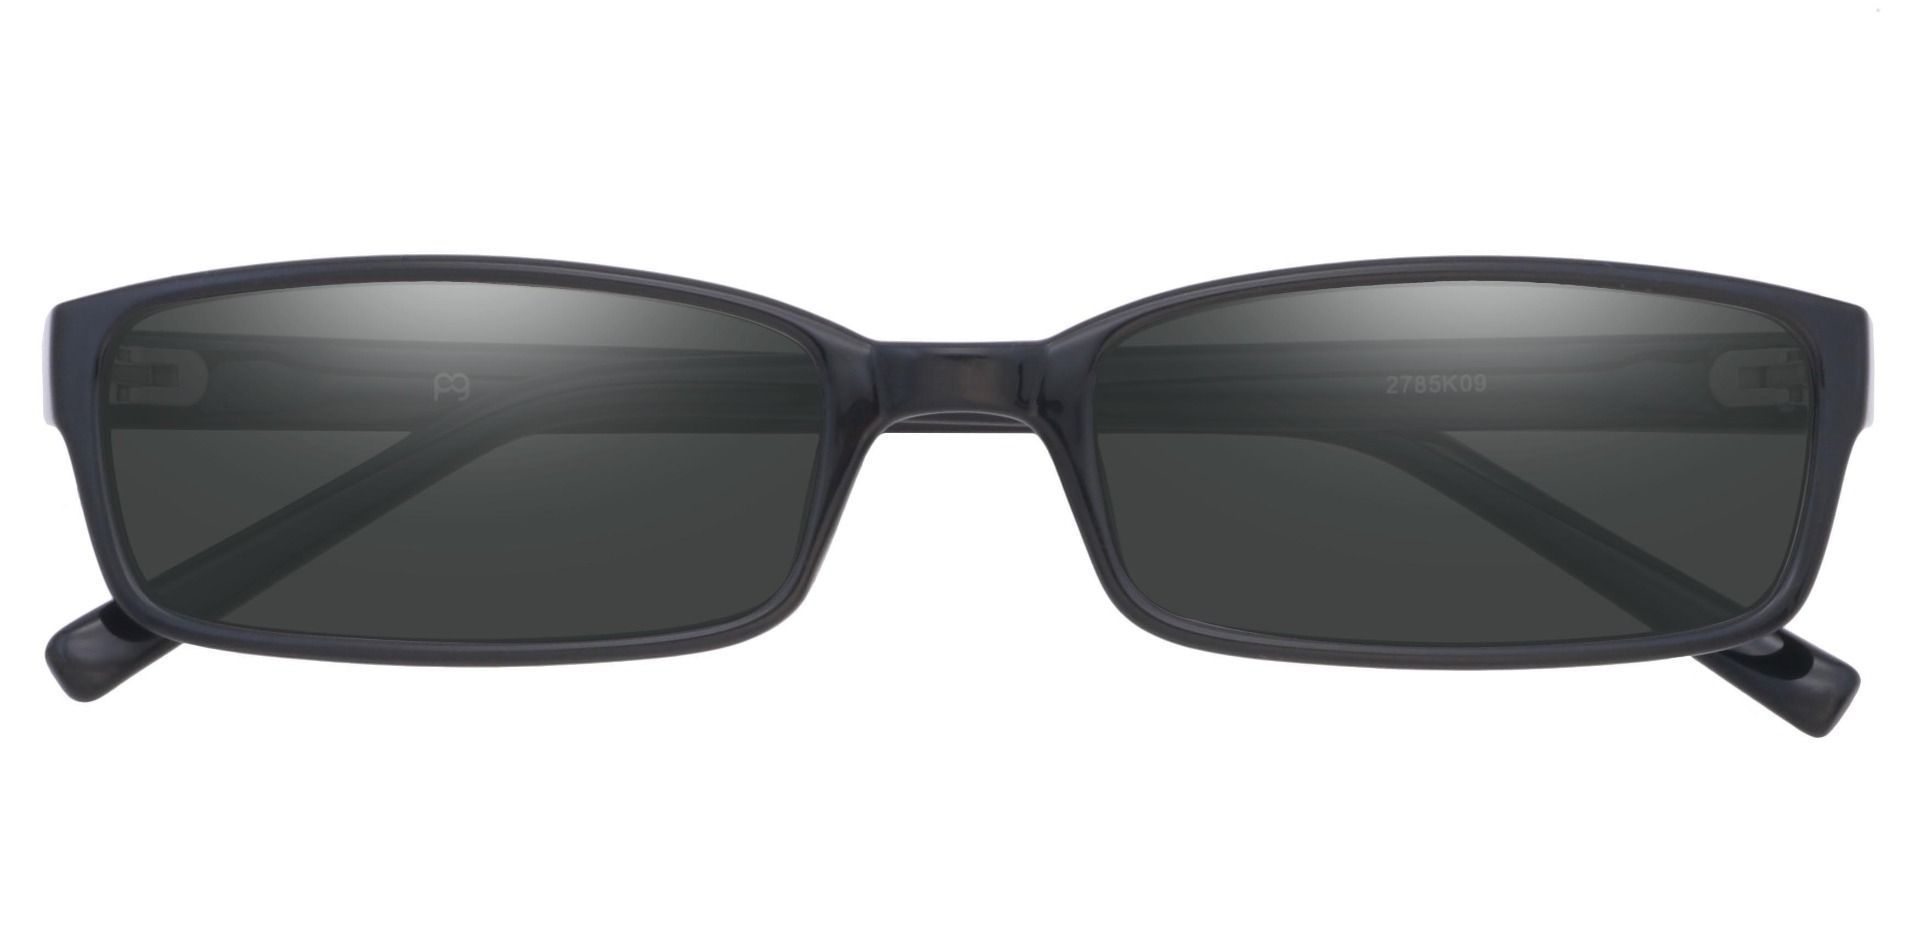 Sanford Rectangle Single Vision Sunglasses -  Black Frame With Gray Lenses